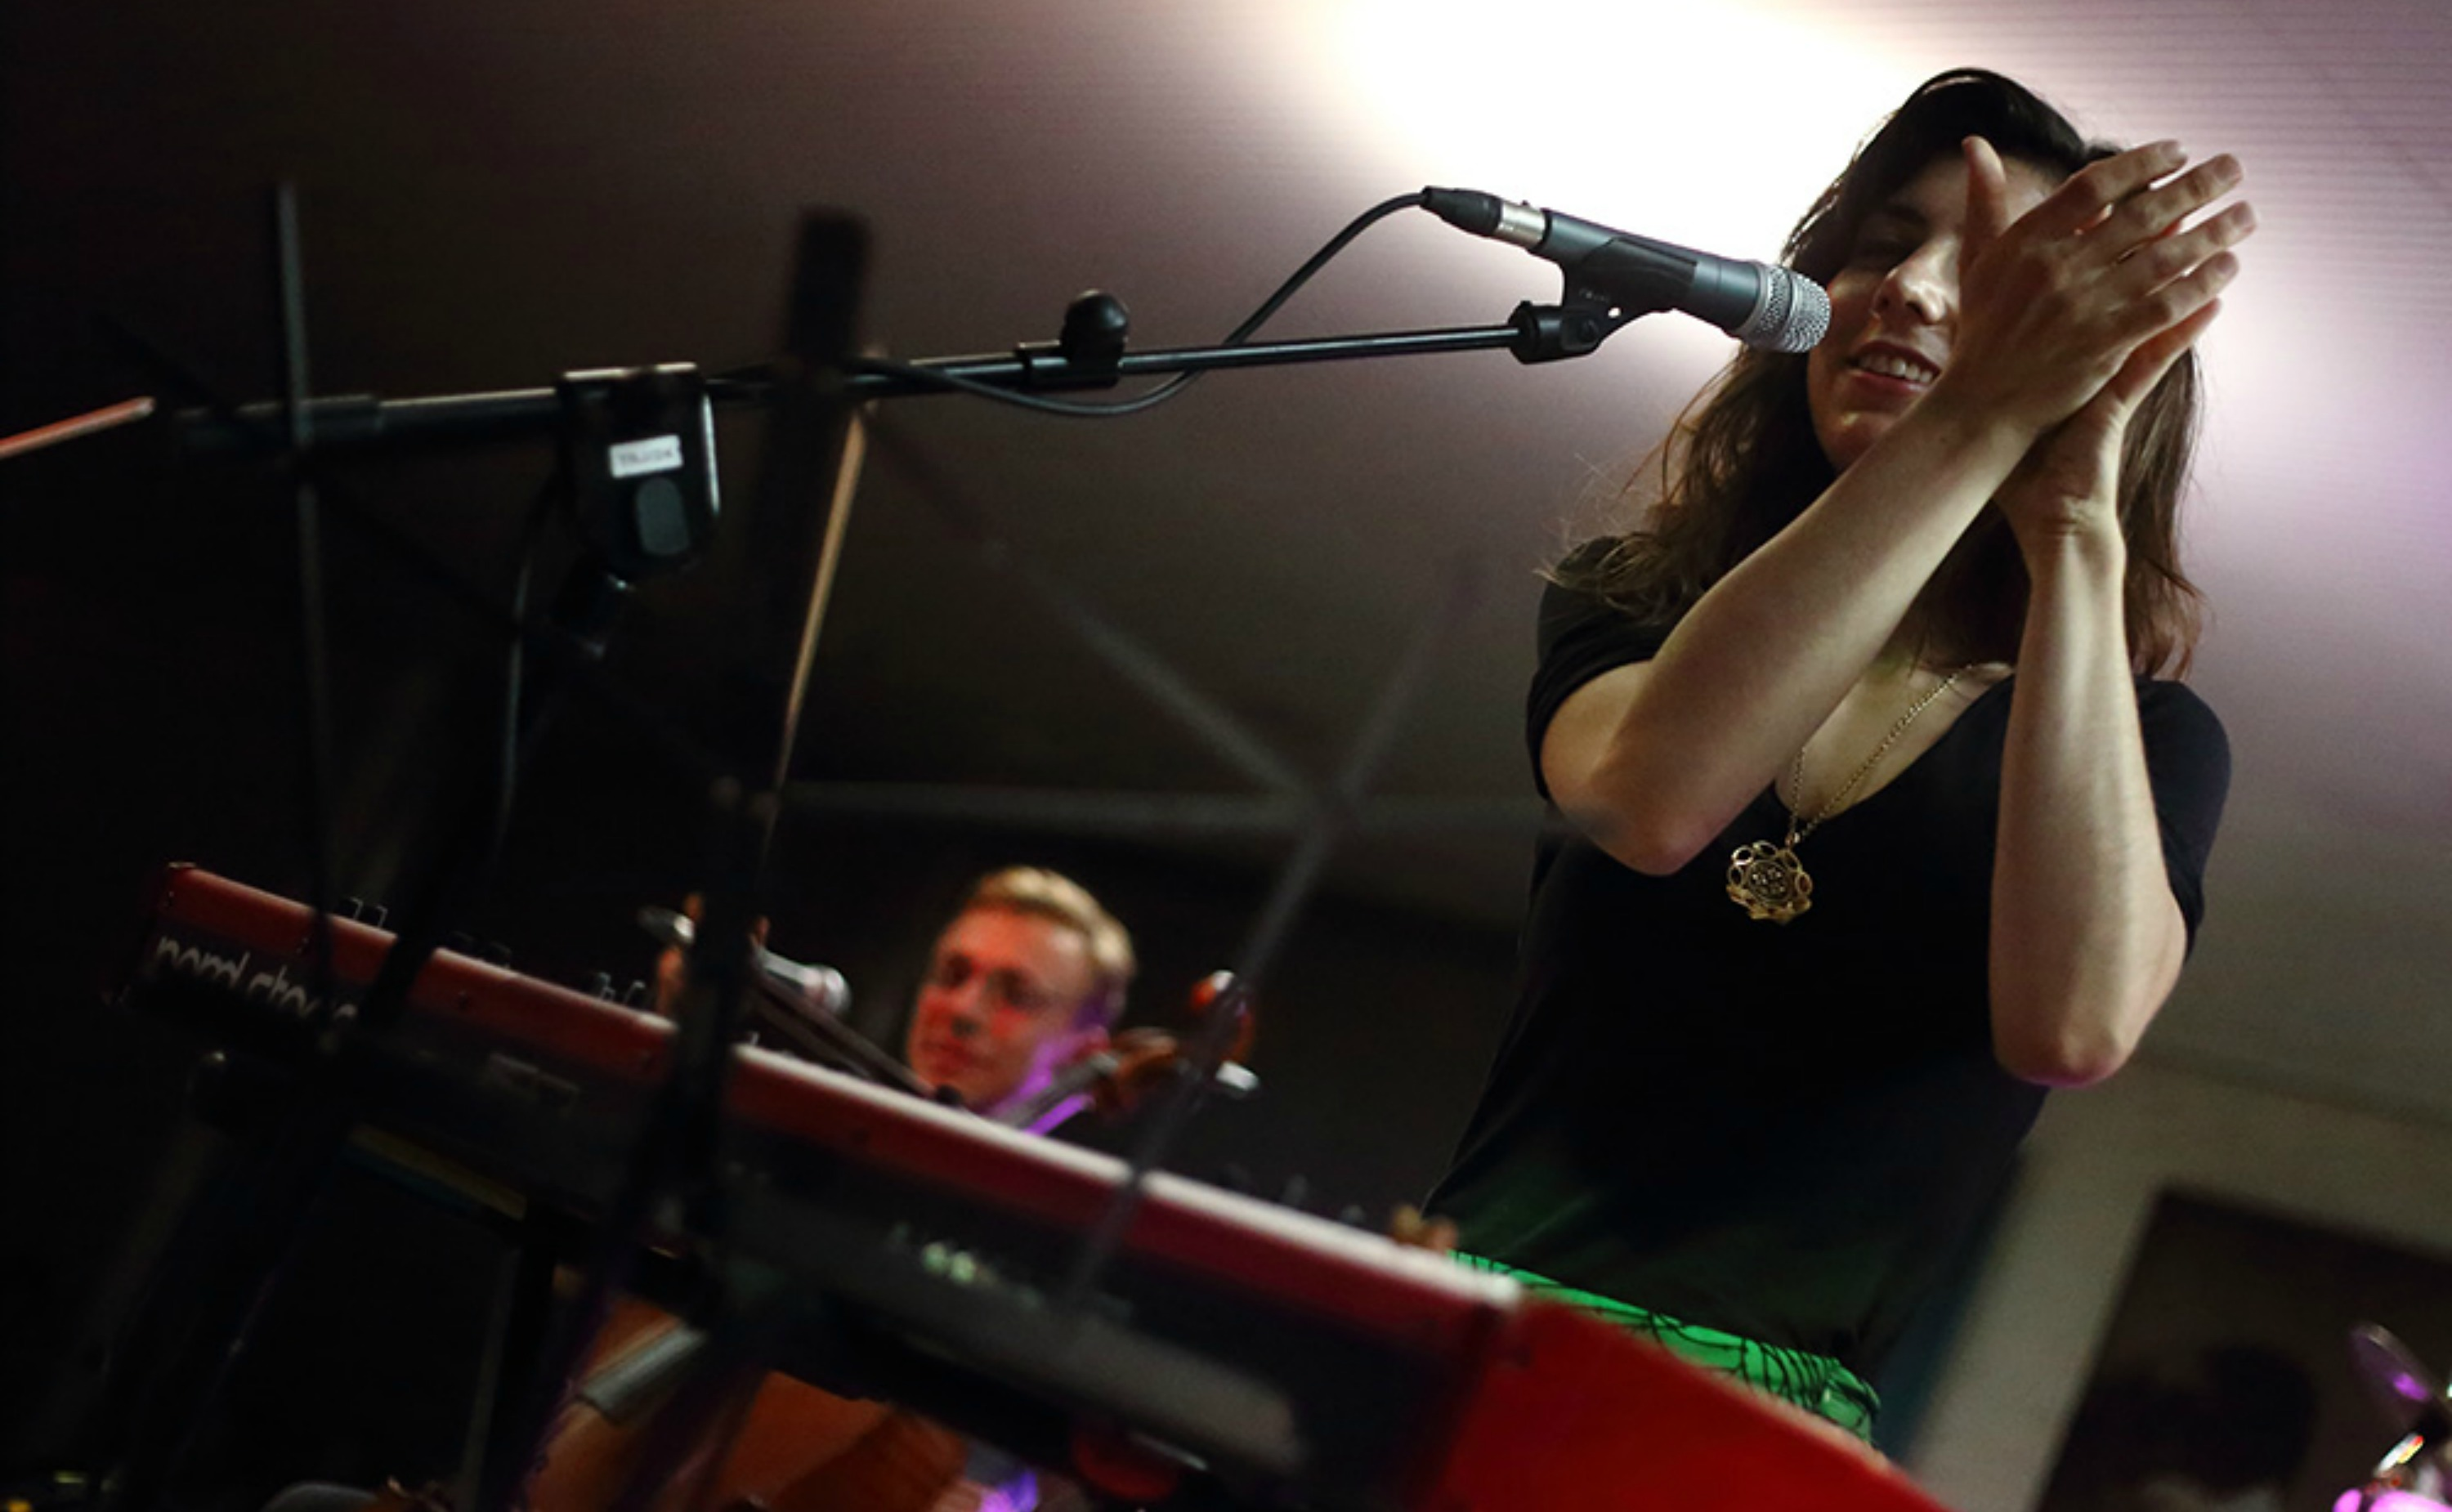 [flash audio] Julia Holter avanza Maxim's I, nueva entrega de City Loud Song